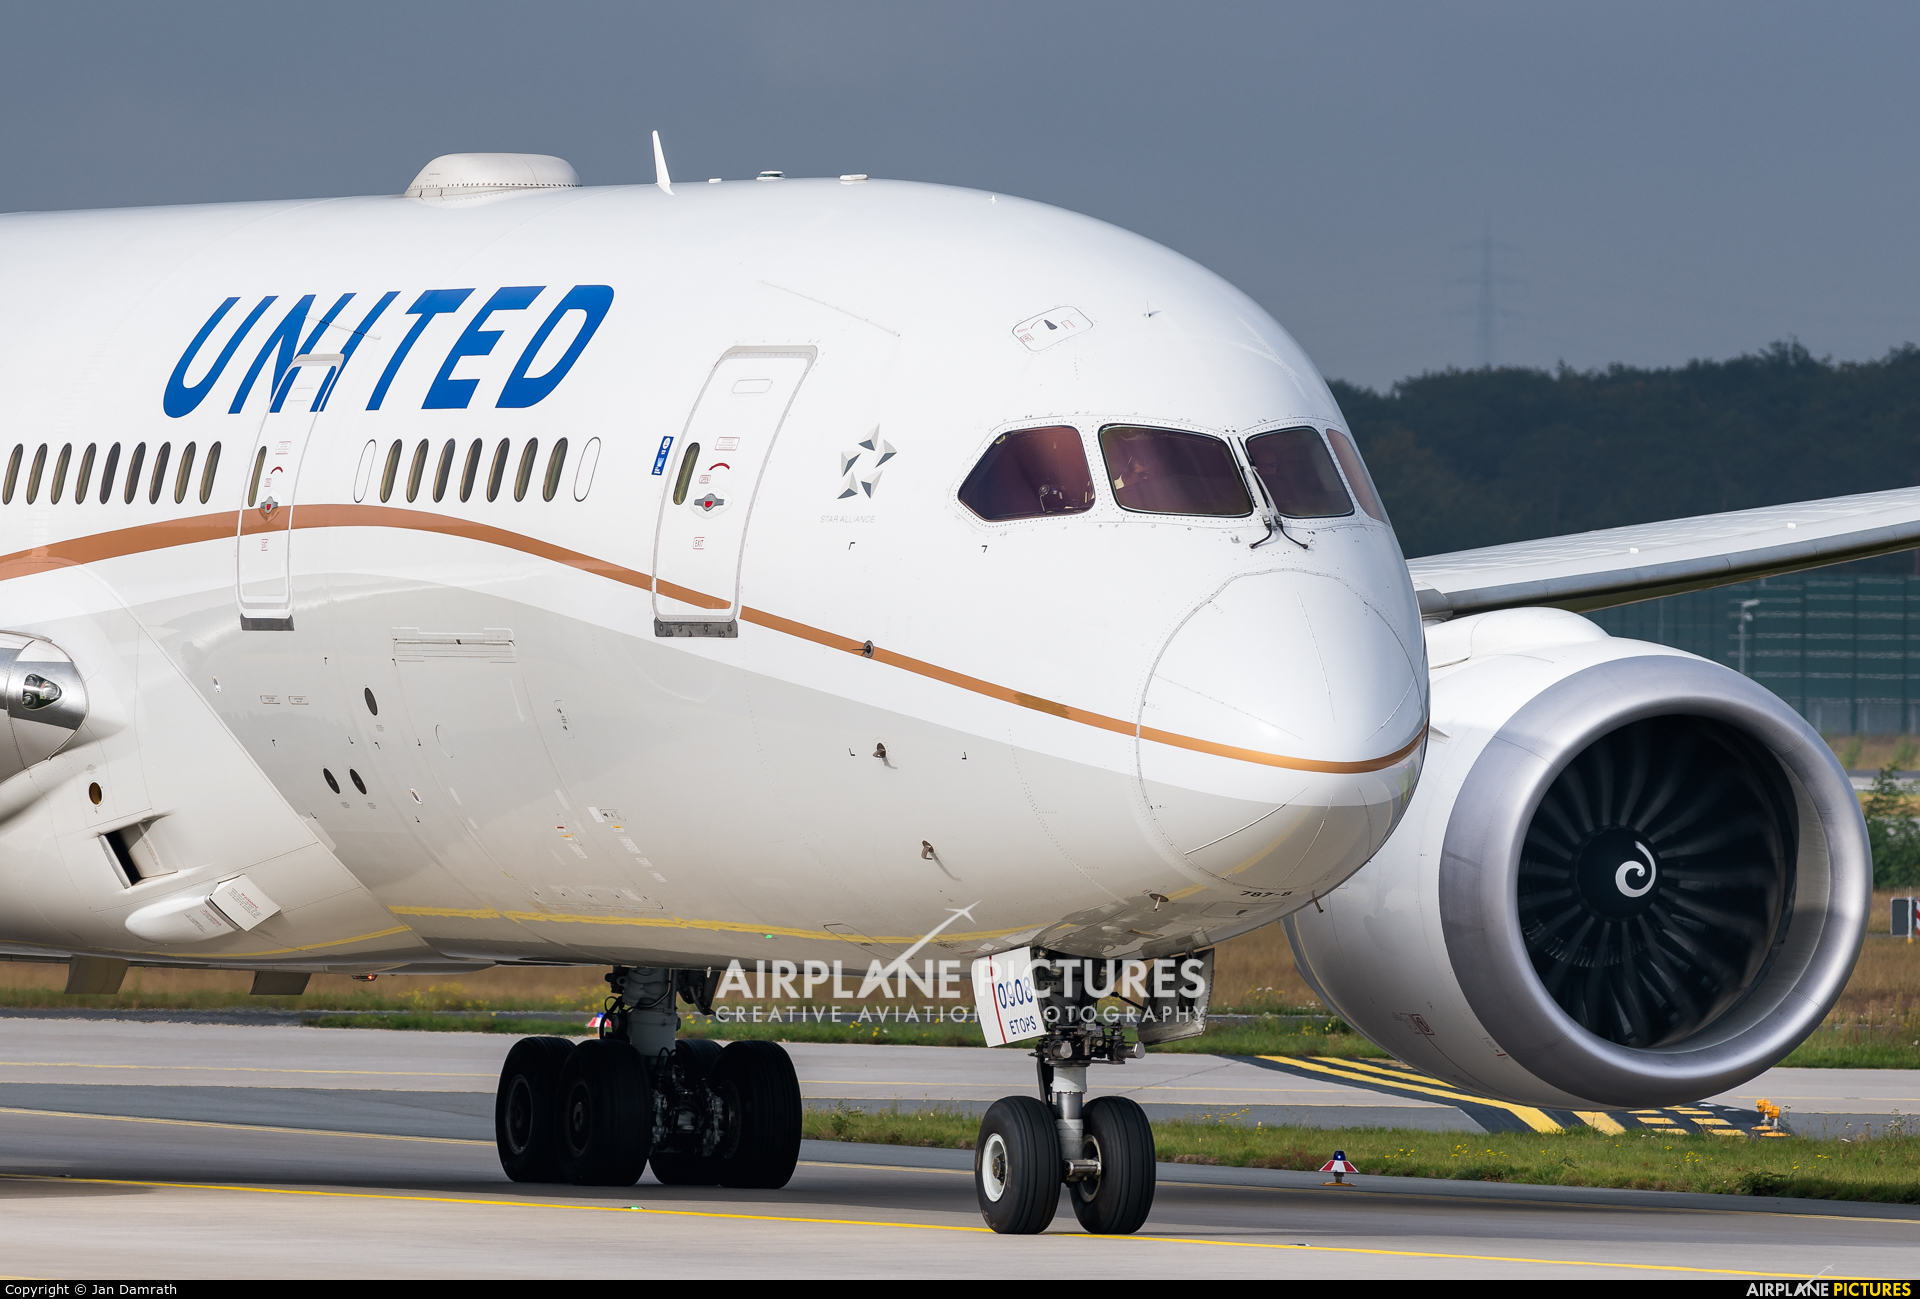 United Airlines N27908 aircraft at Frankfurt